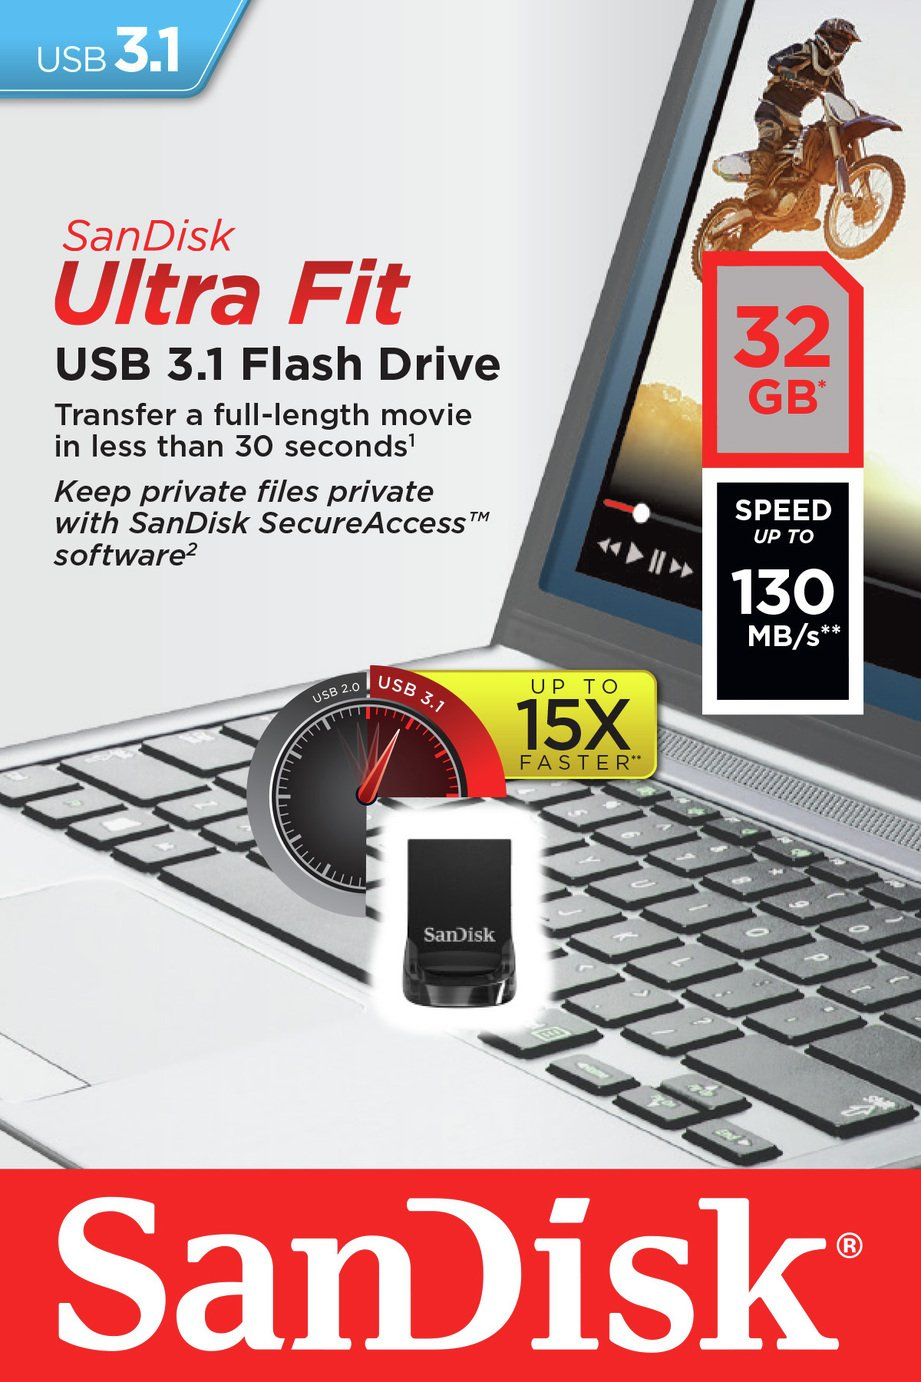 SanDisk Ultra Fit 130MB/s USB 3.1 Flash Drive - 32GB